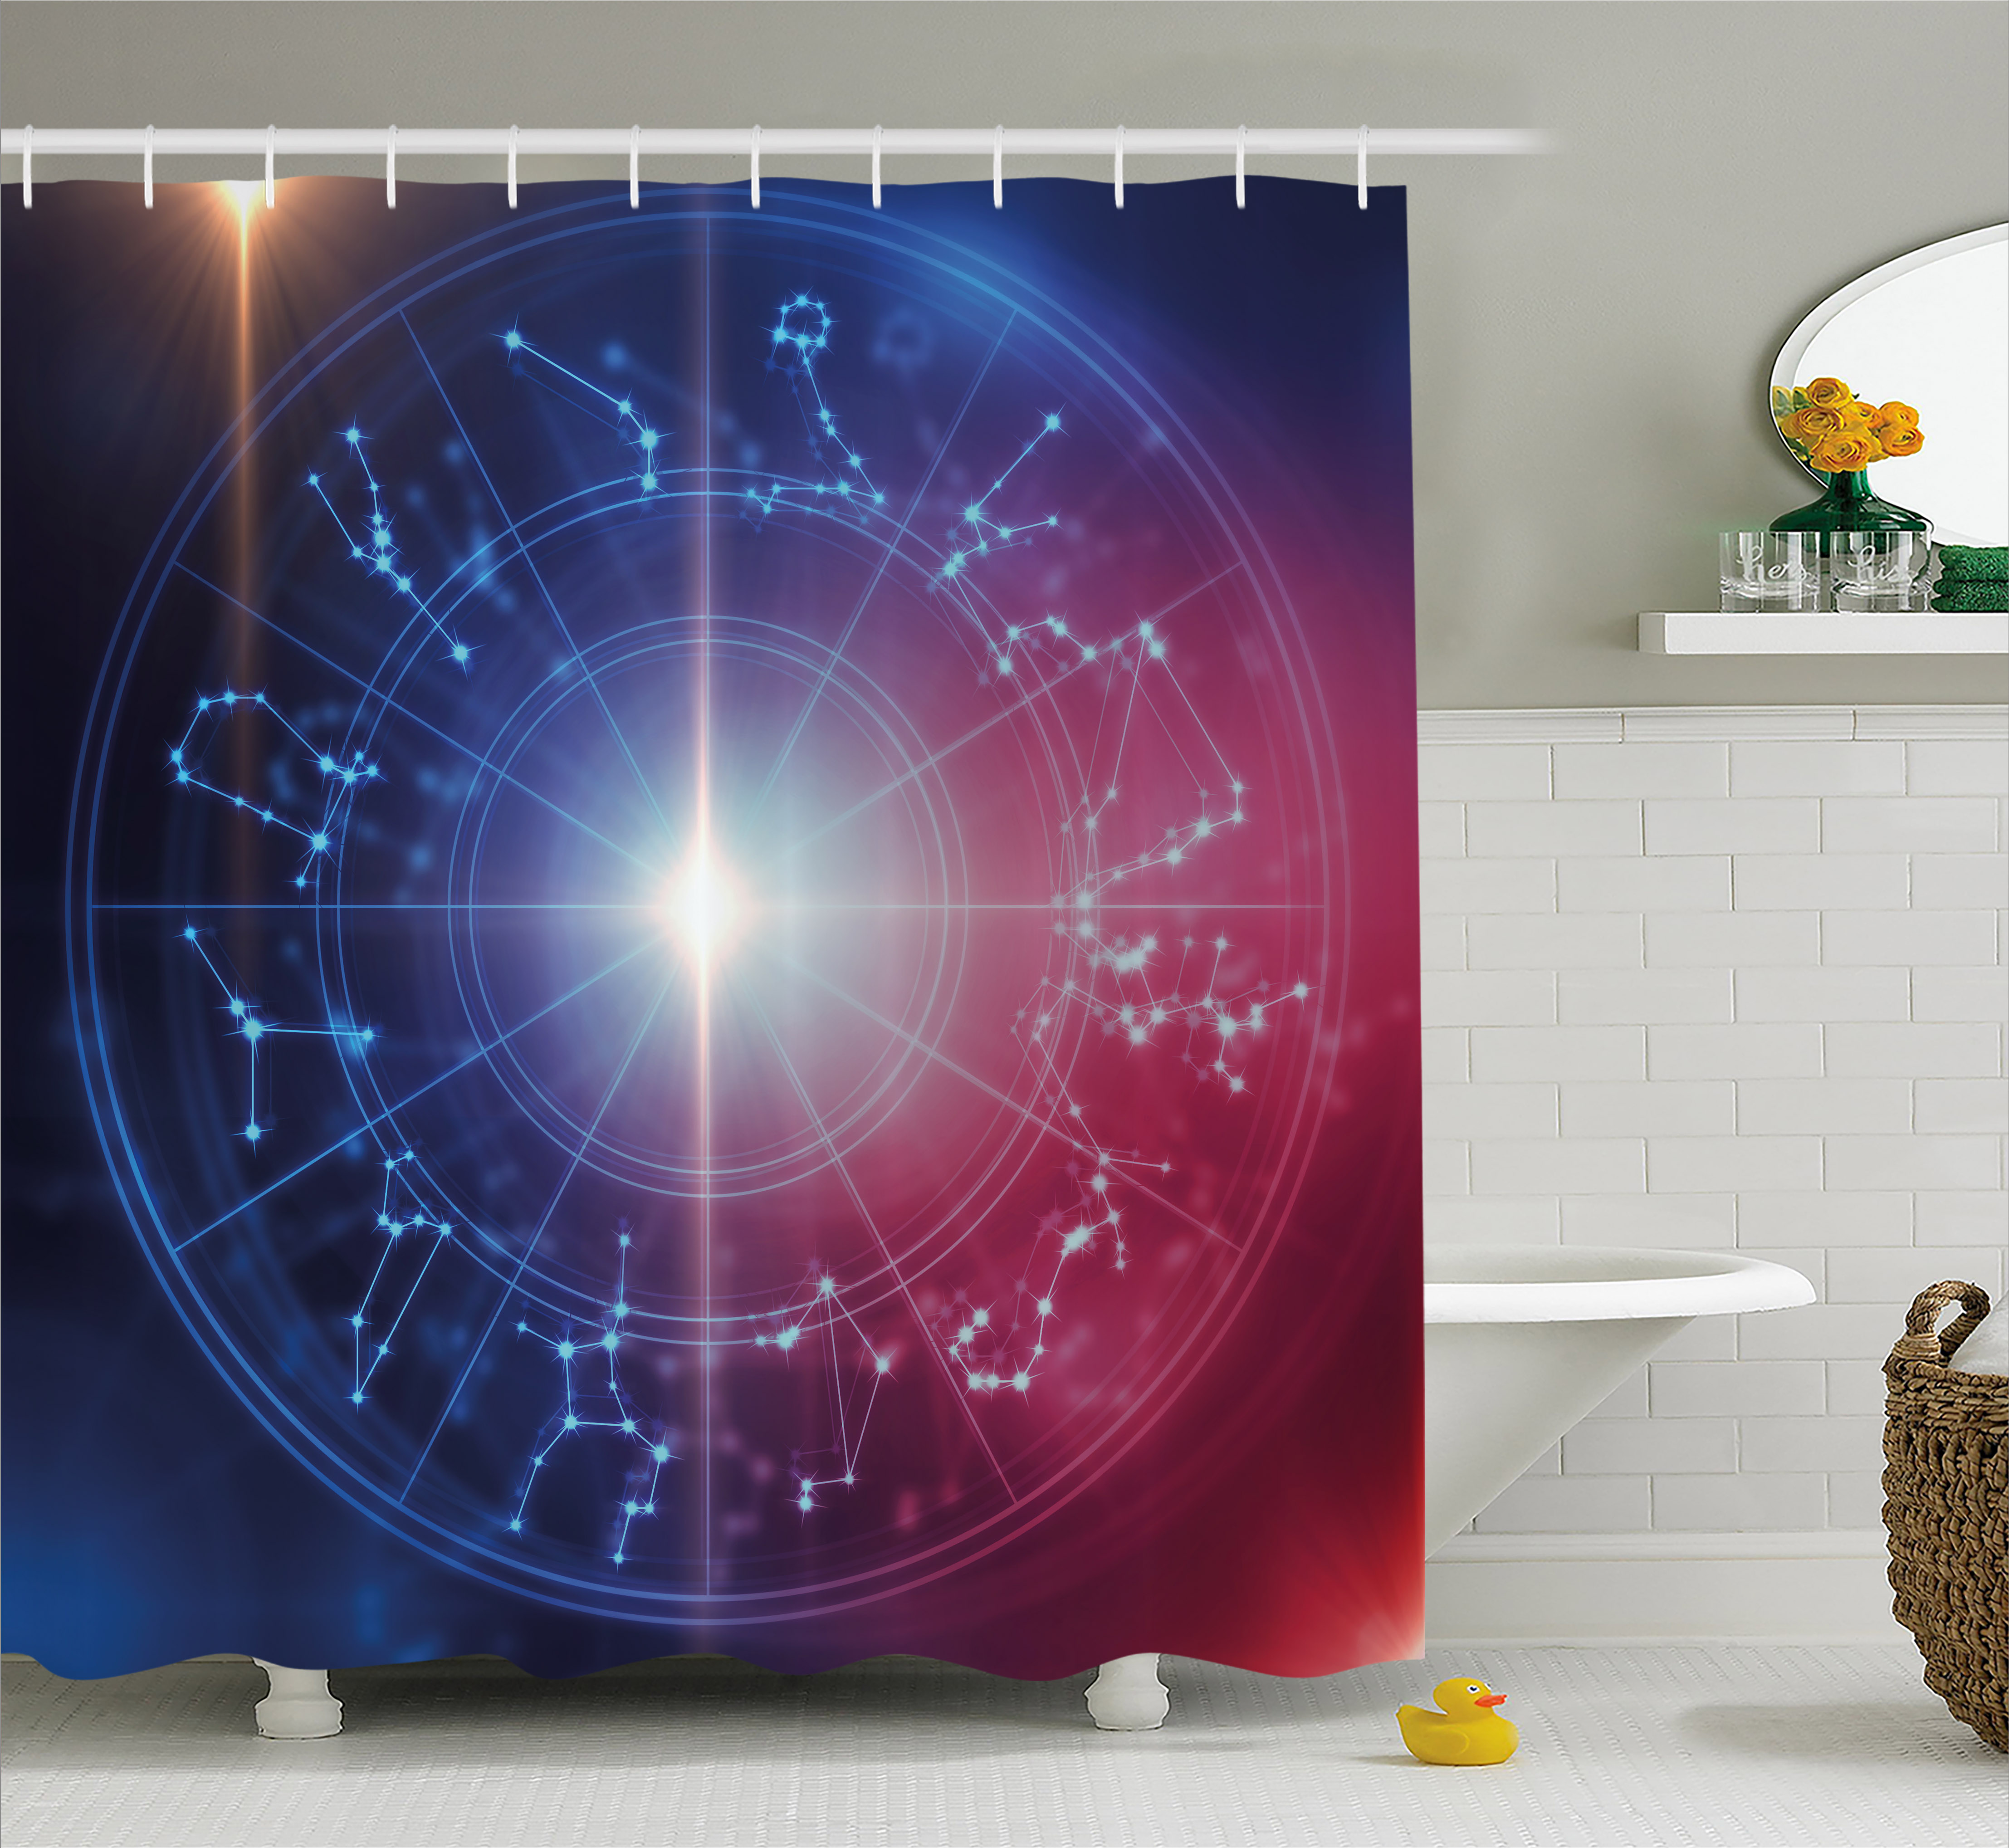 Astrology Shower Curtain, Sacred Horoscope Symbols Geometrical Dots Connected Star Shapes Image, Fabric Bathroom Set with Hooks, 69W X 75L Inches Long, Blue White and Red, by Ambesonne